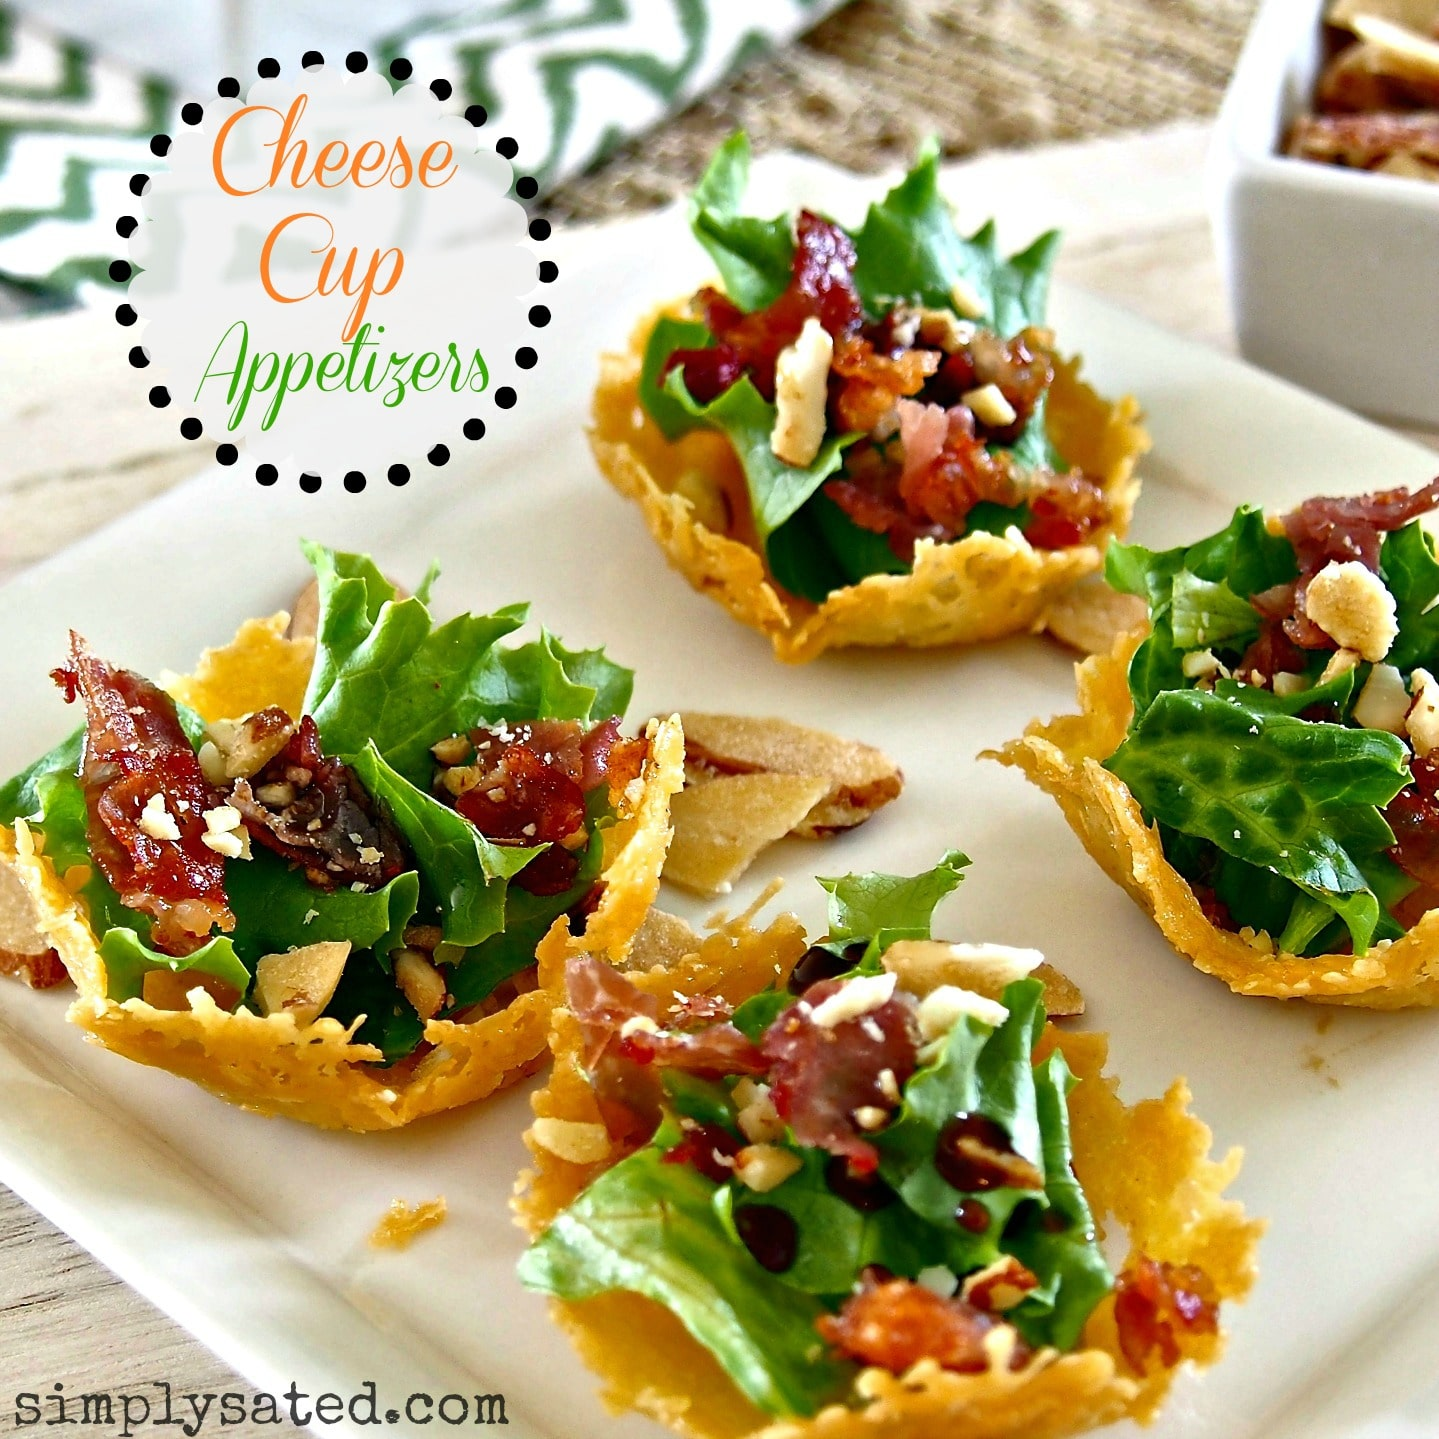 Beautiful Cheese Cup Appetizers to fill with your favorite ingredients. www.simplysated.com